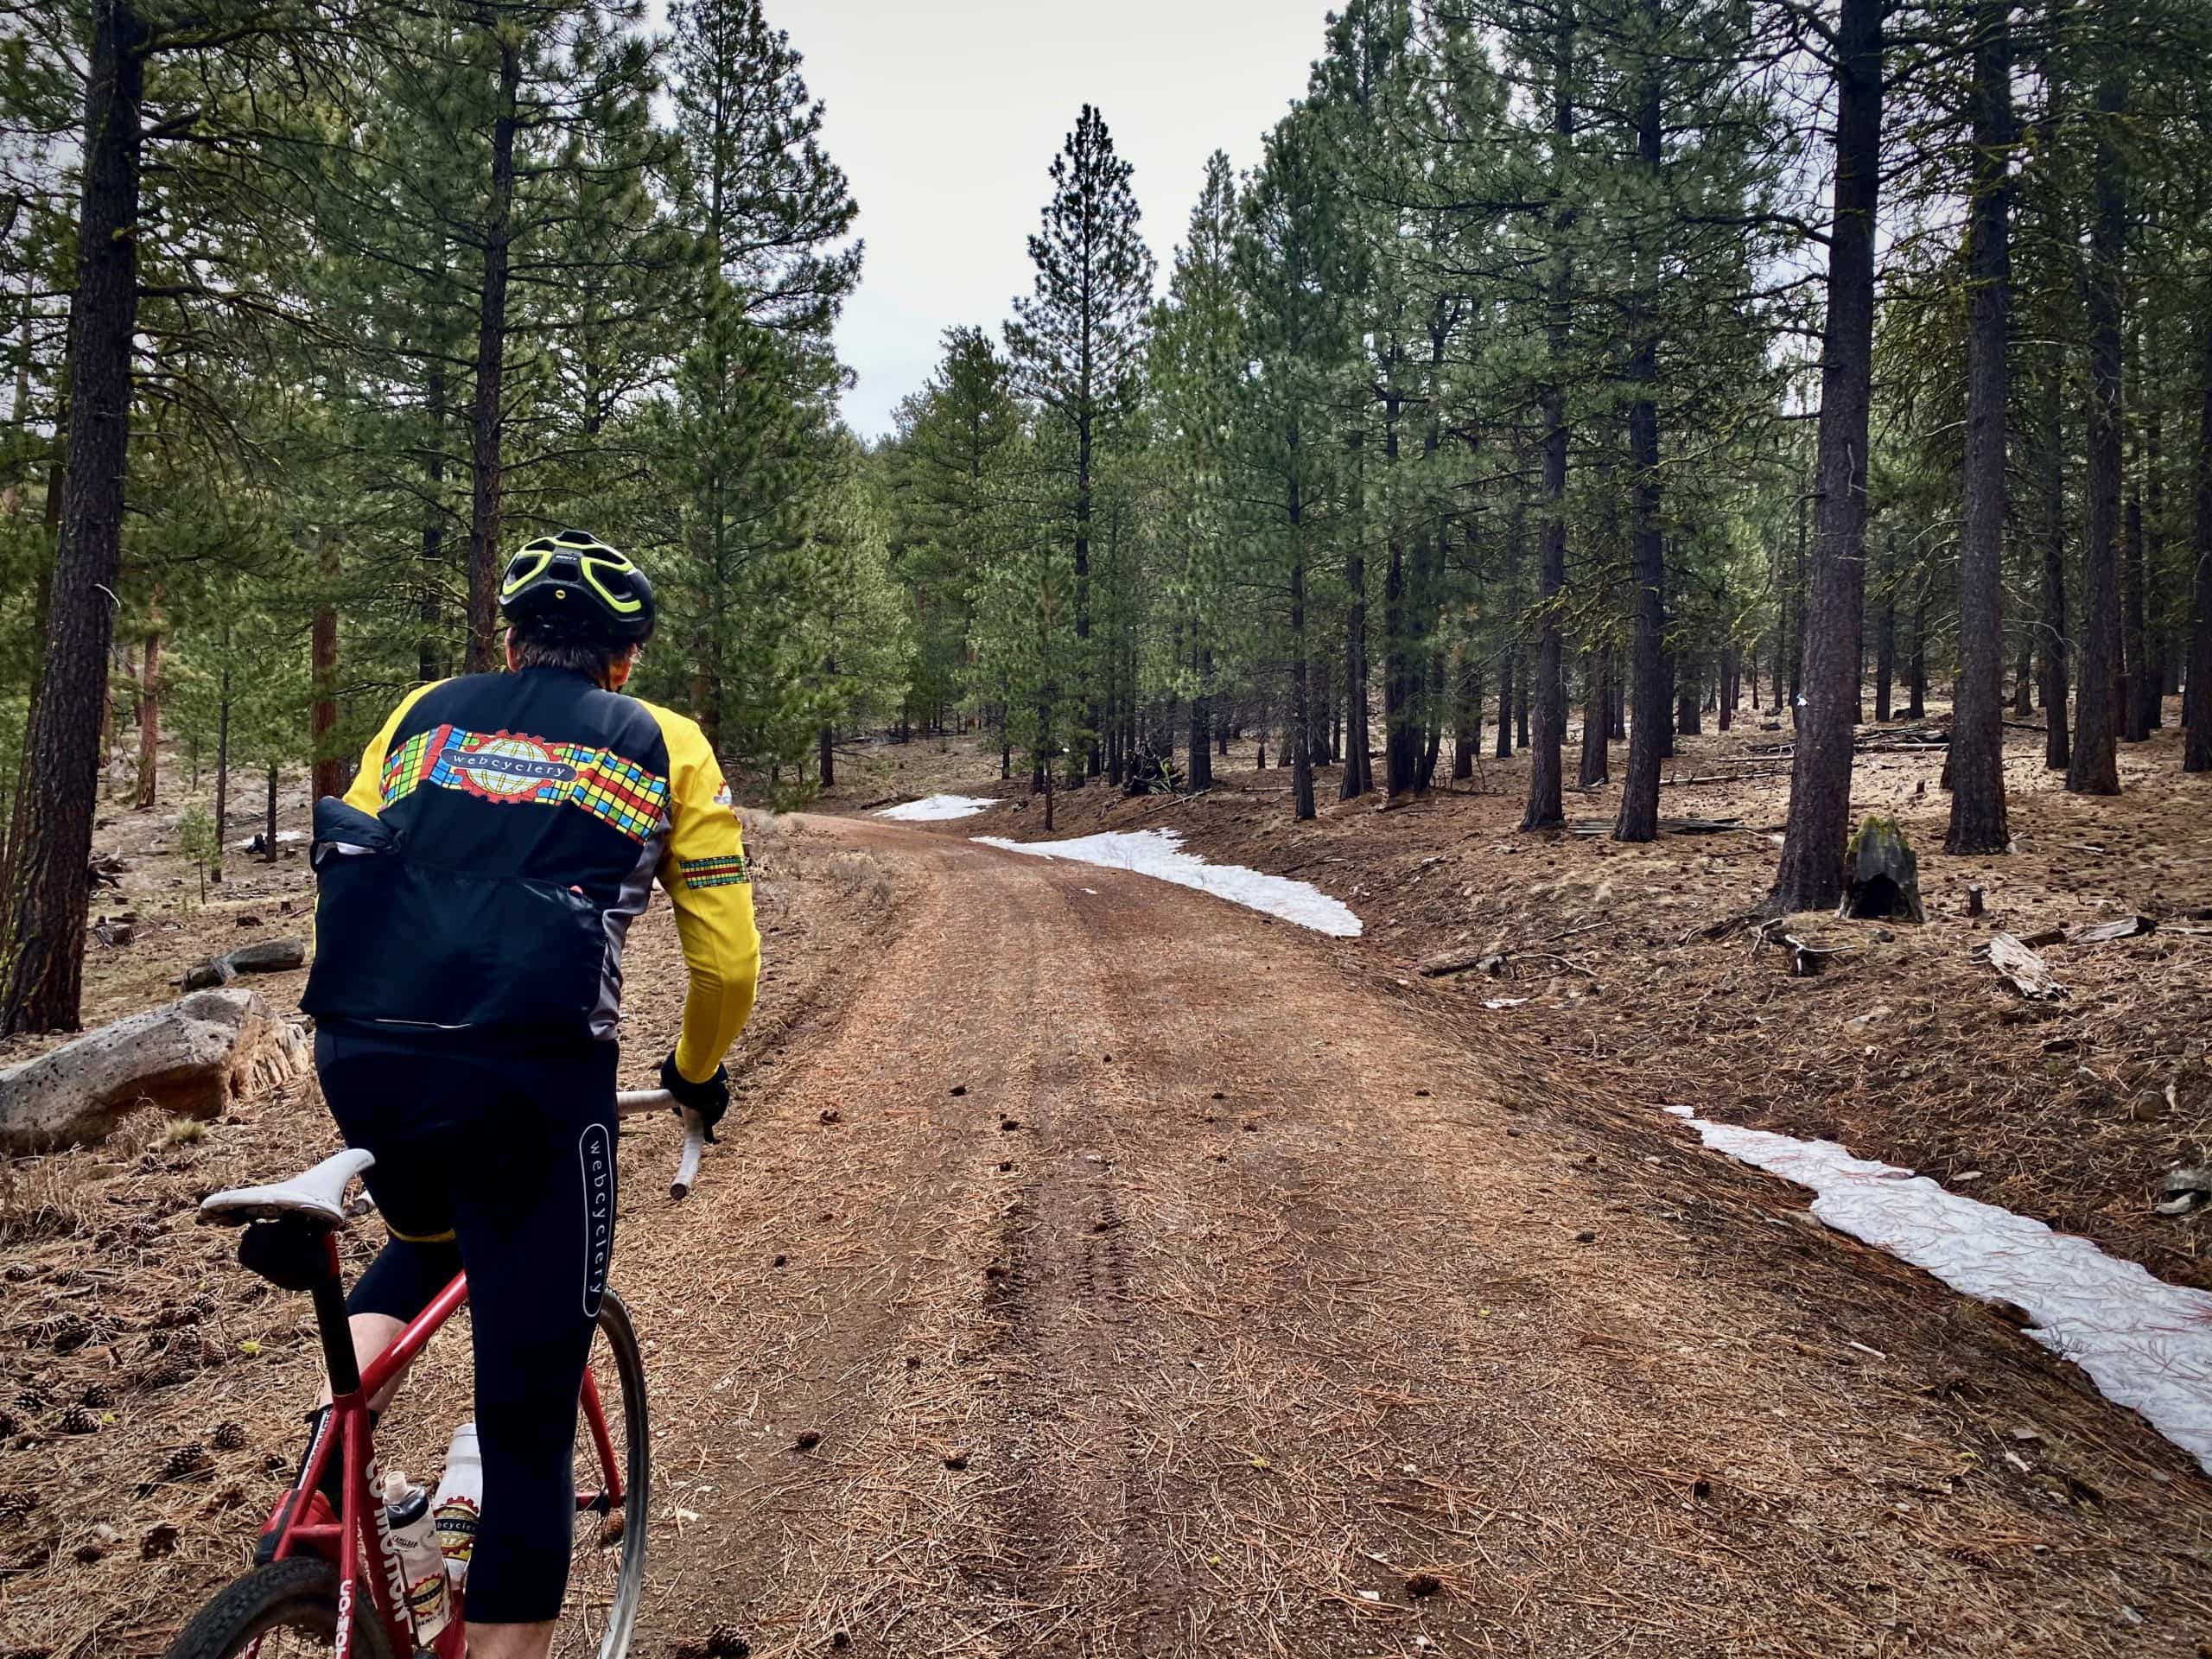 Cyclist riding forest service road on Pine Mountain ridge near Bend, OR.